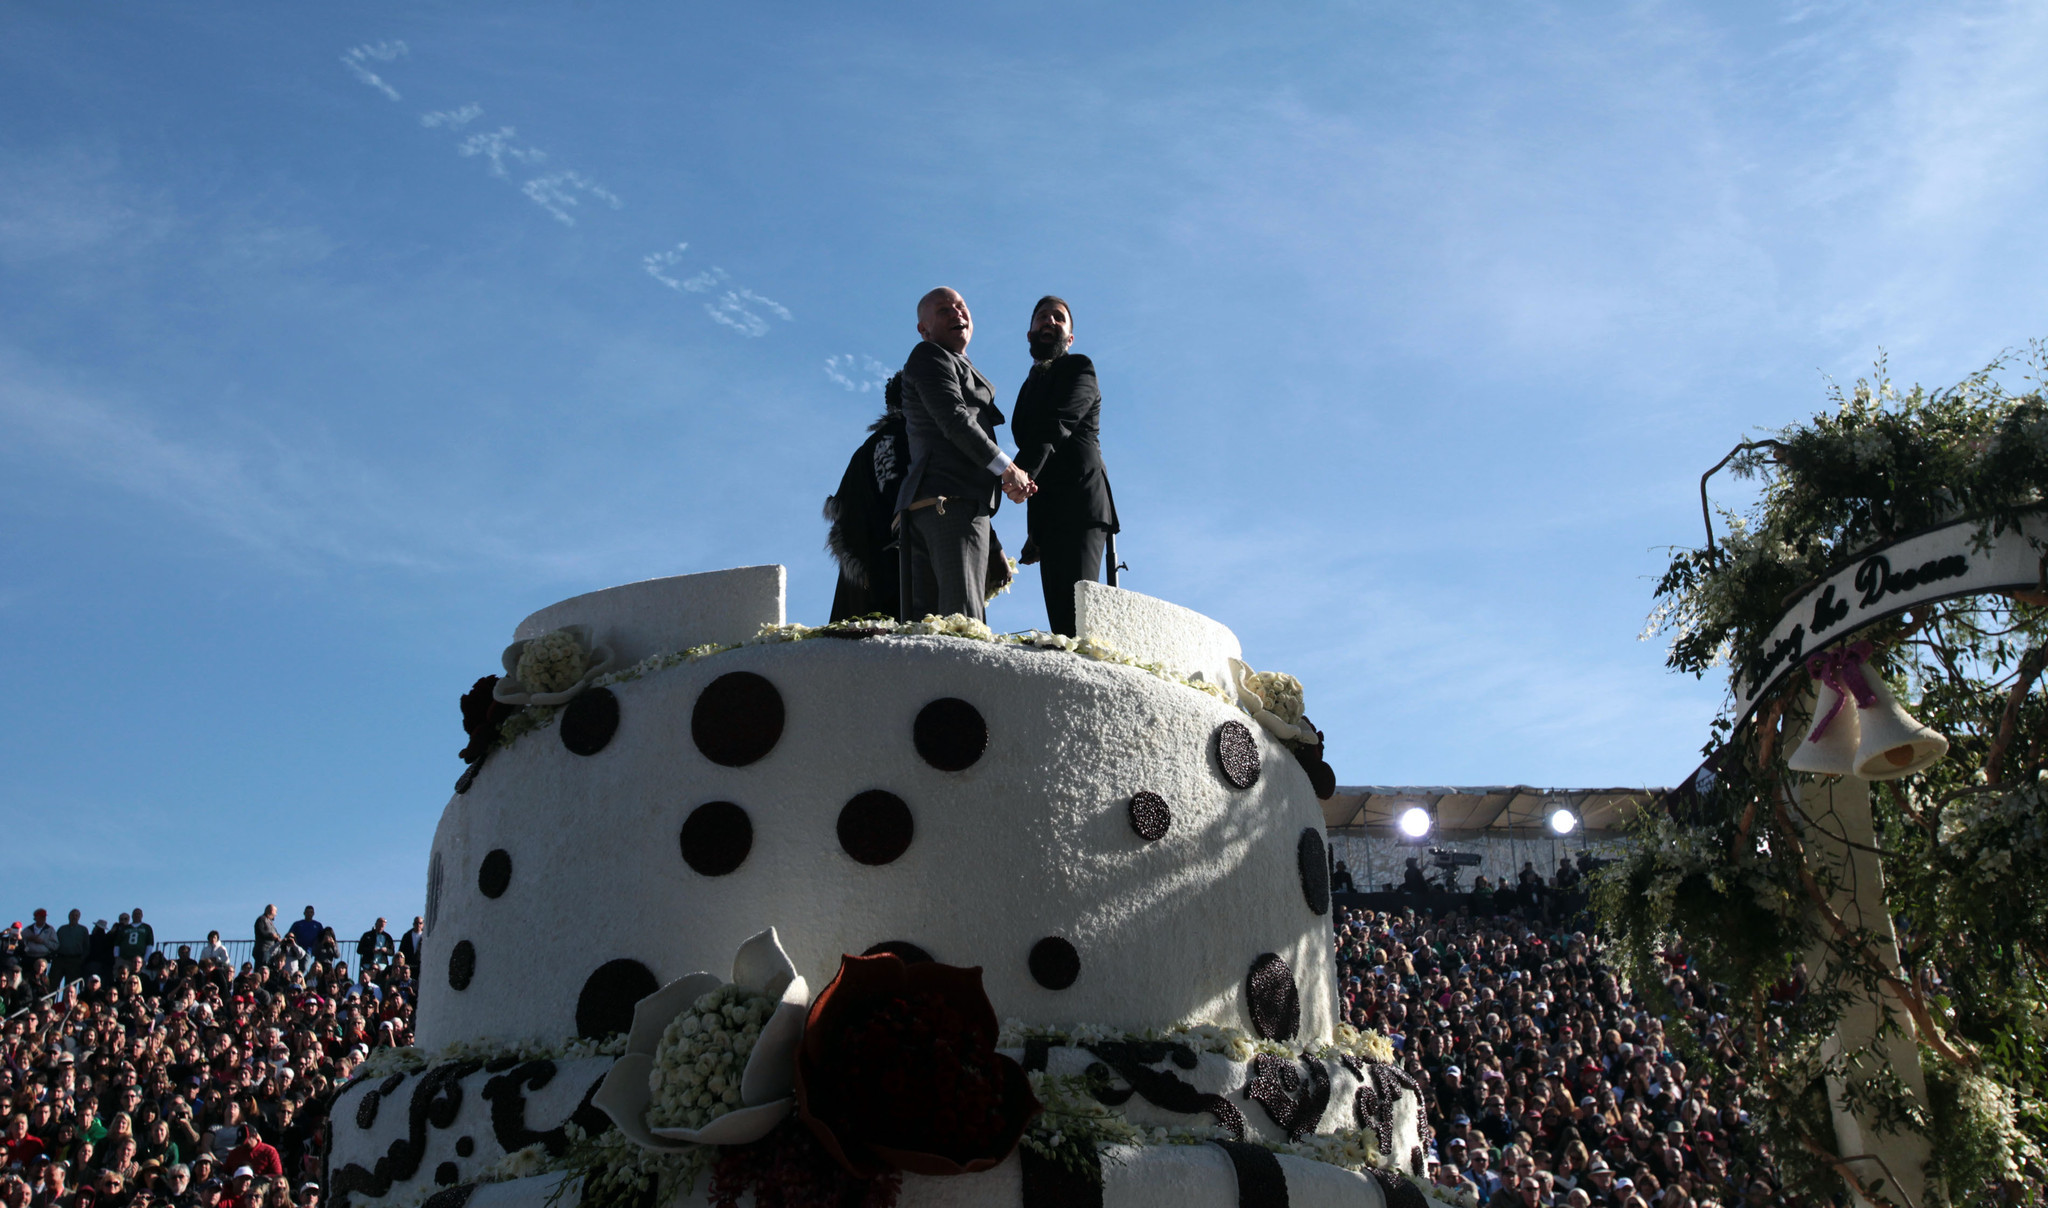 Same-sex wedding occurs without incident on Rose Parade float